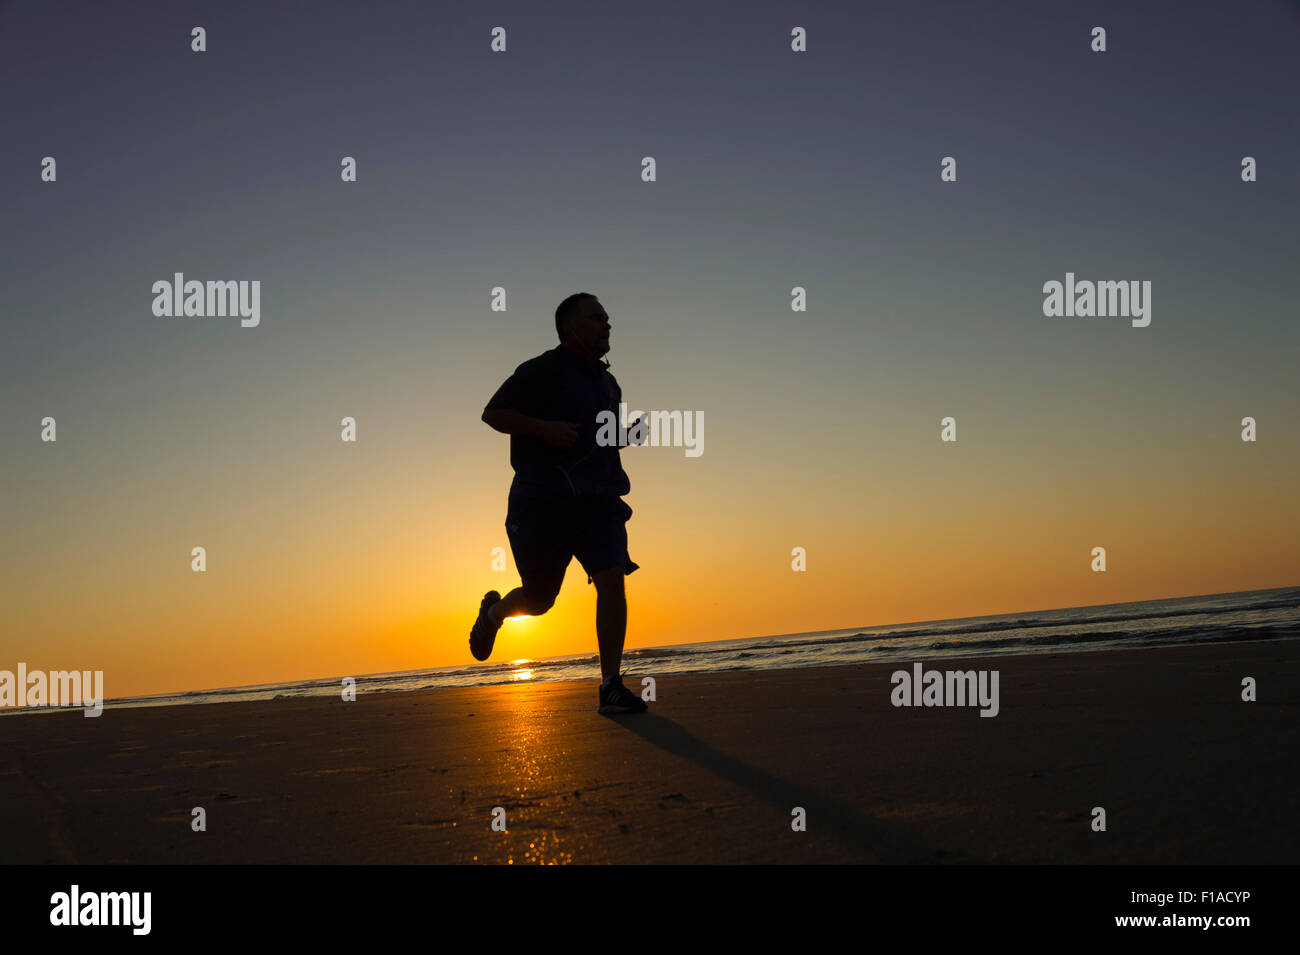 Fat Man Running On Beach At Sunrise - Stock Image